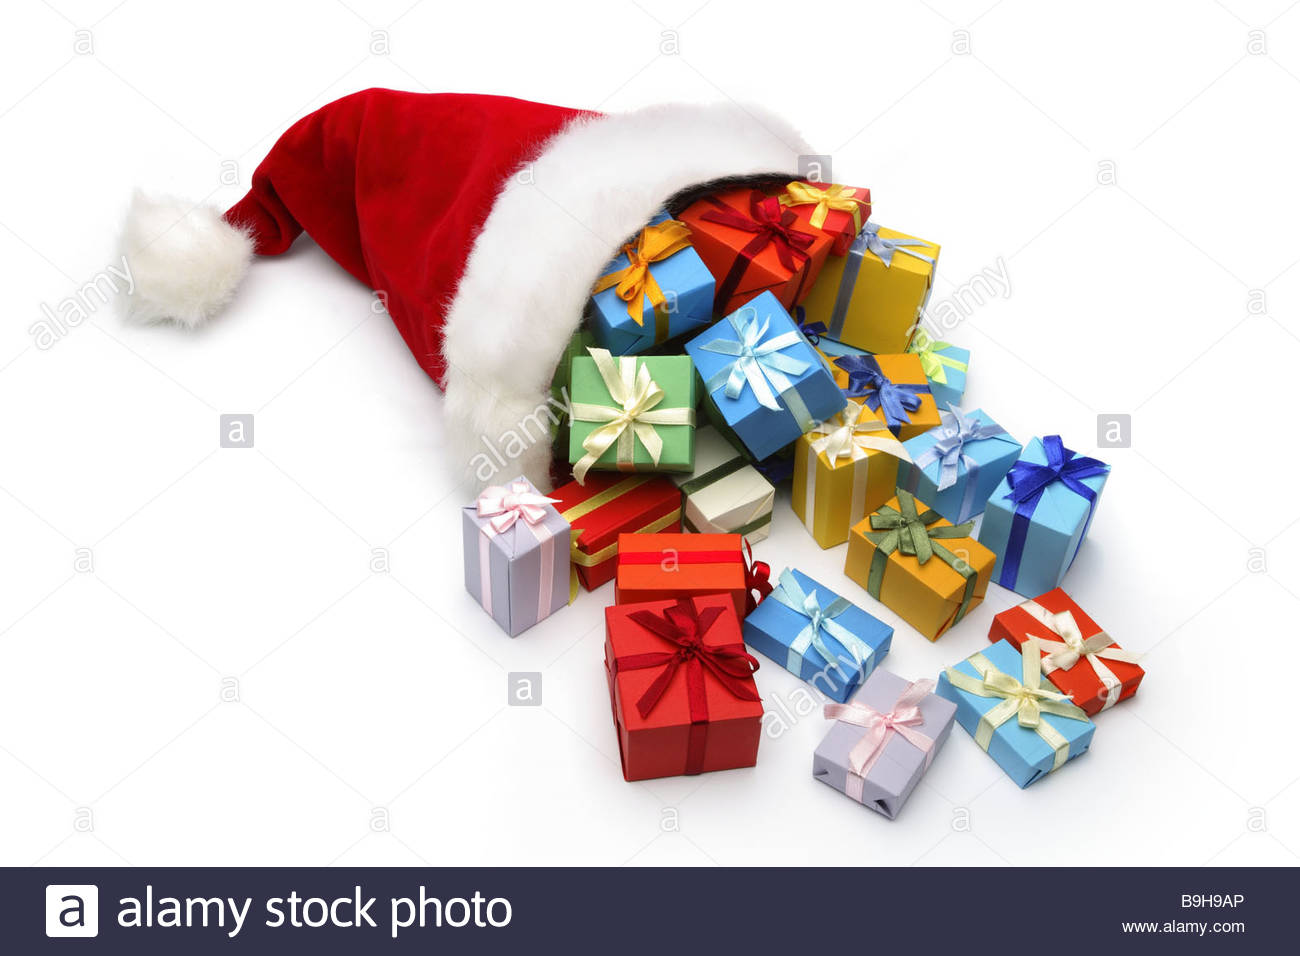 Santa claus cap gifts christmas gifts present surprises packet stock santa claus cap gifts christmas gifts present surprises packet christmas gift giving holiday ceremony festivity packed giving negle Images